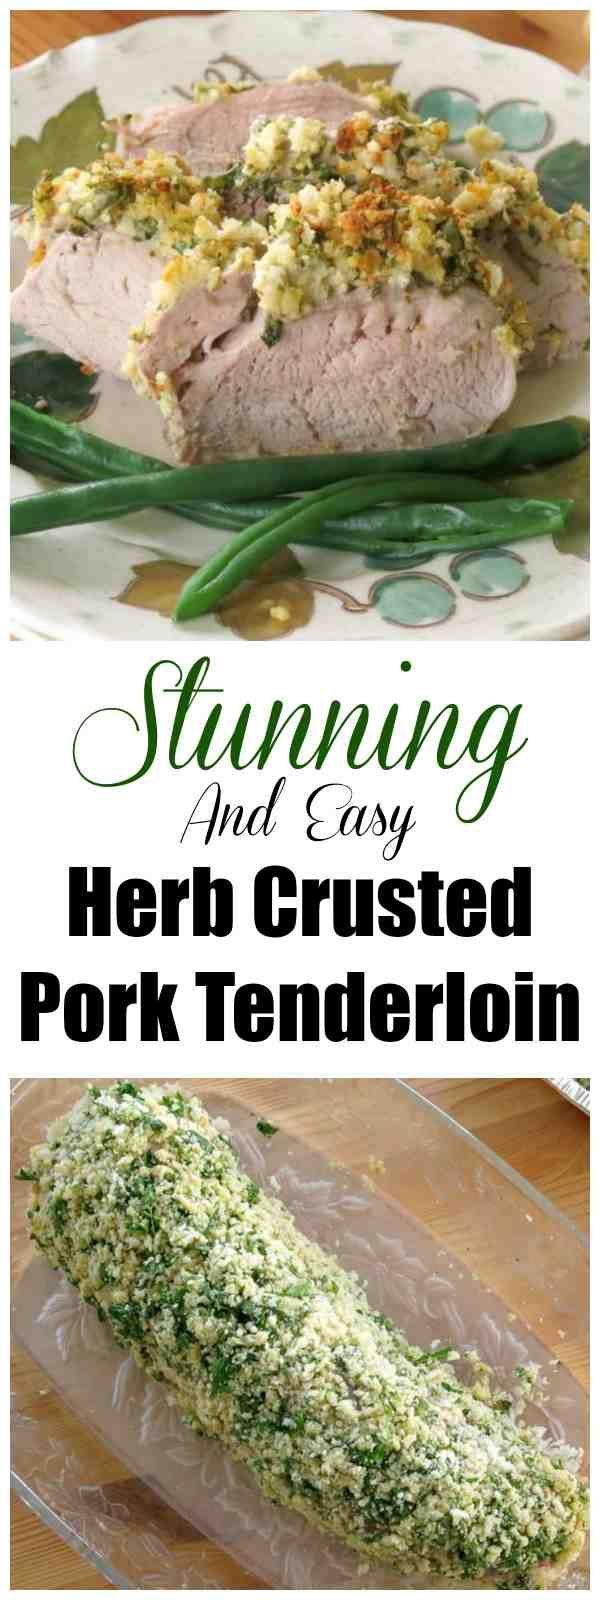 Mustard Herb Crusted Pork Tenderloin Recipe